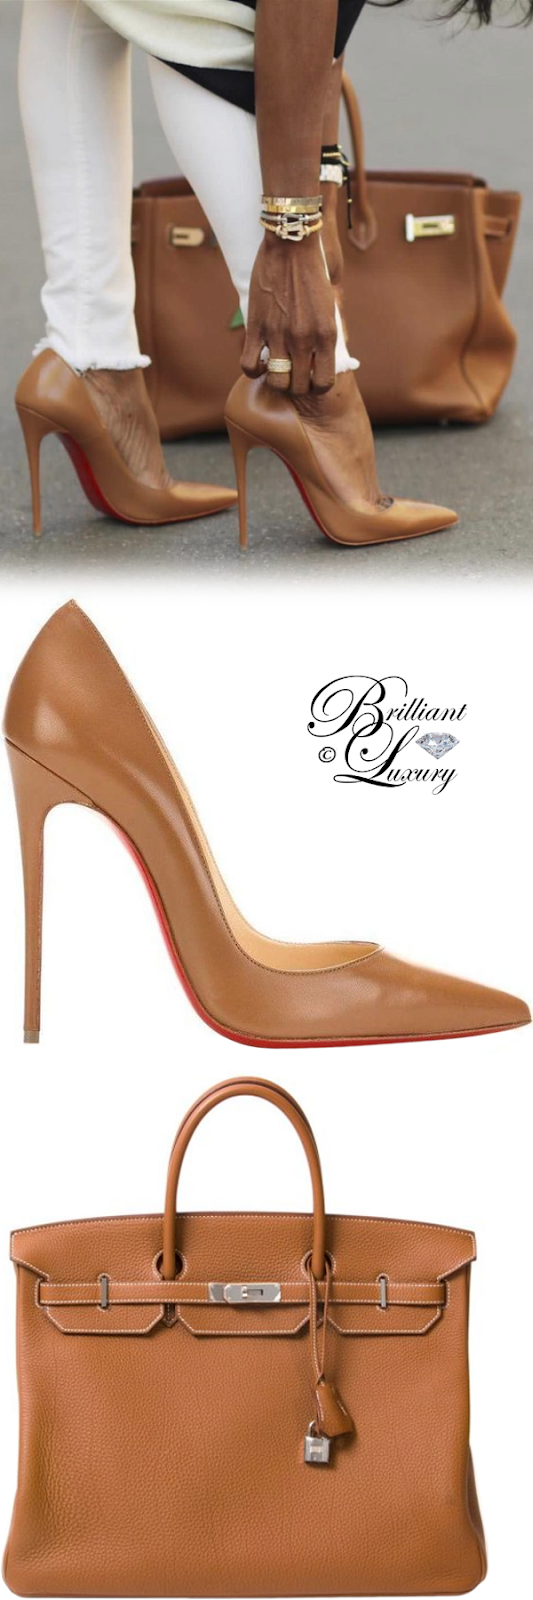 Brilliant Luxury ♦ Hermès Birkin bag and Christian Louboutin So Kate pumps #brown #streetstyle